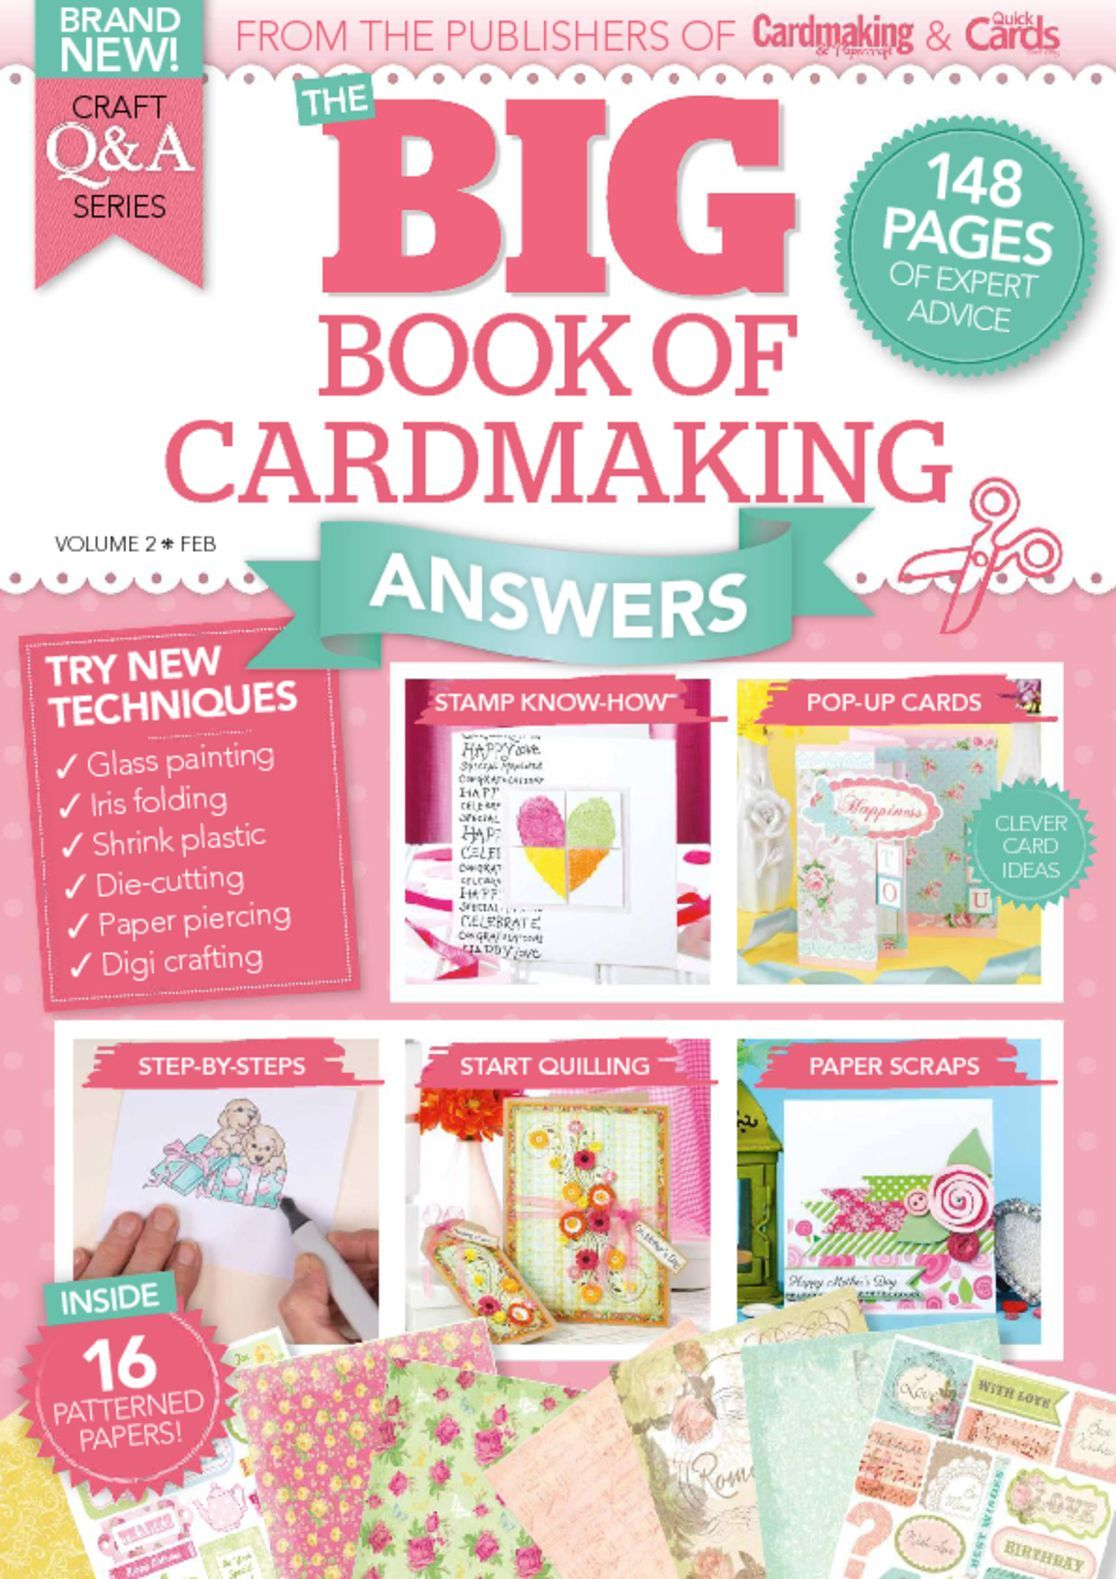 Big Book of Cardmaking Answers Digital